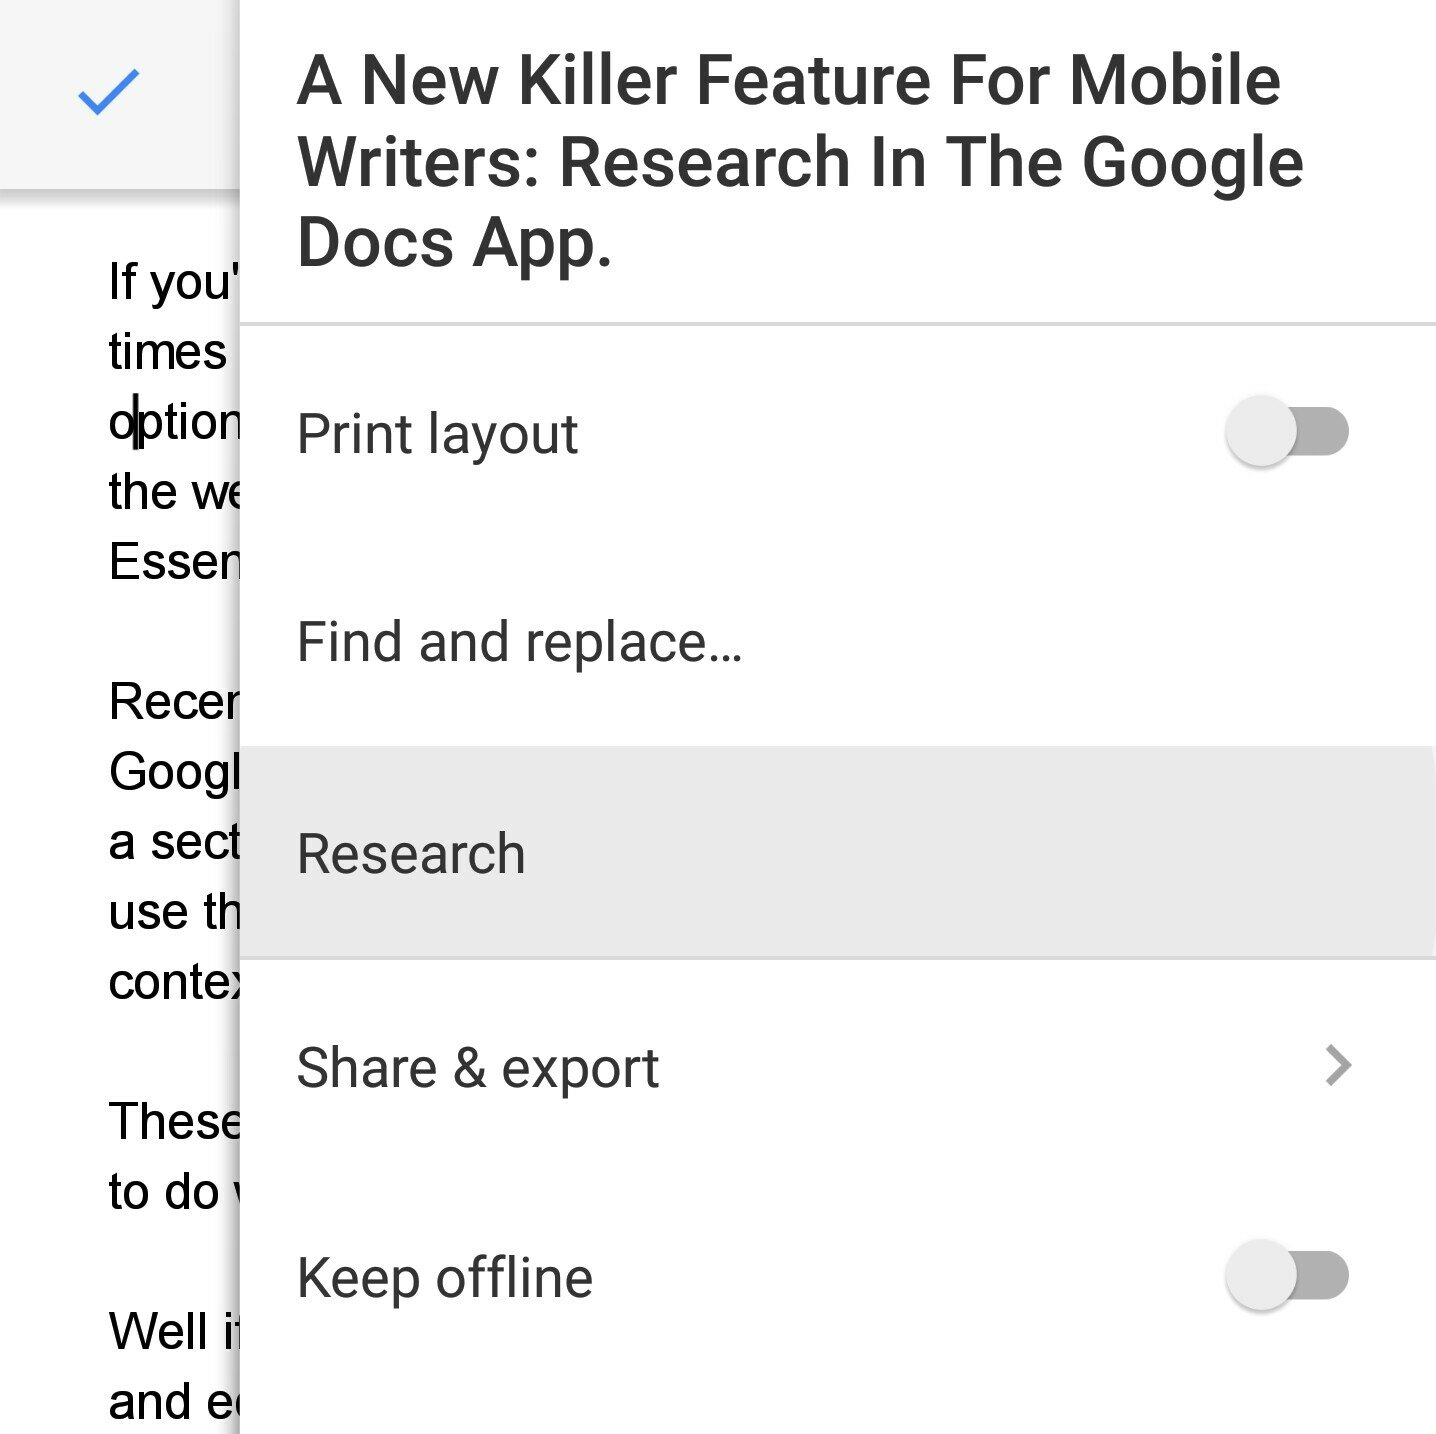 Research In Google Docs App